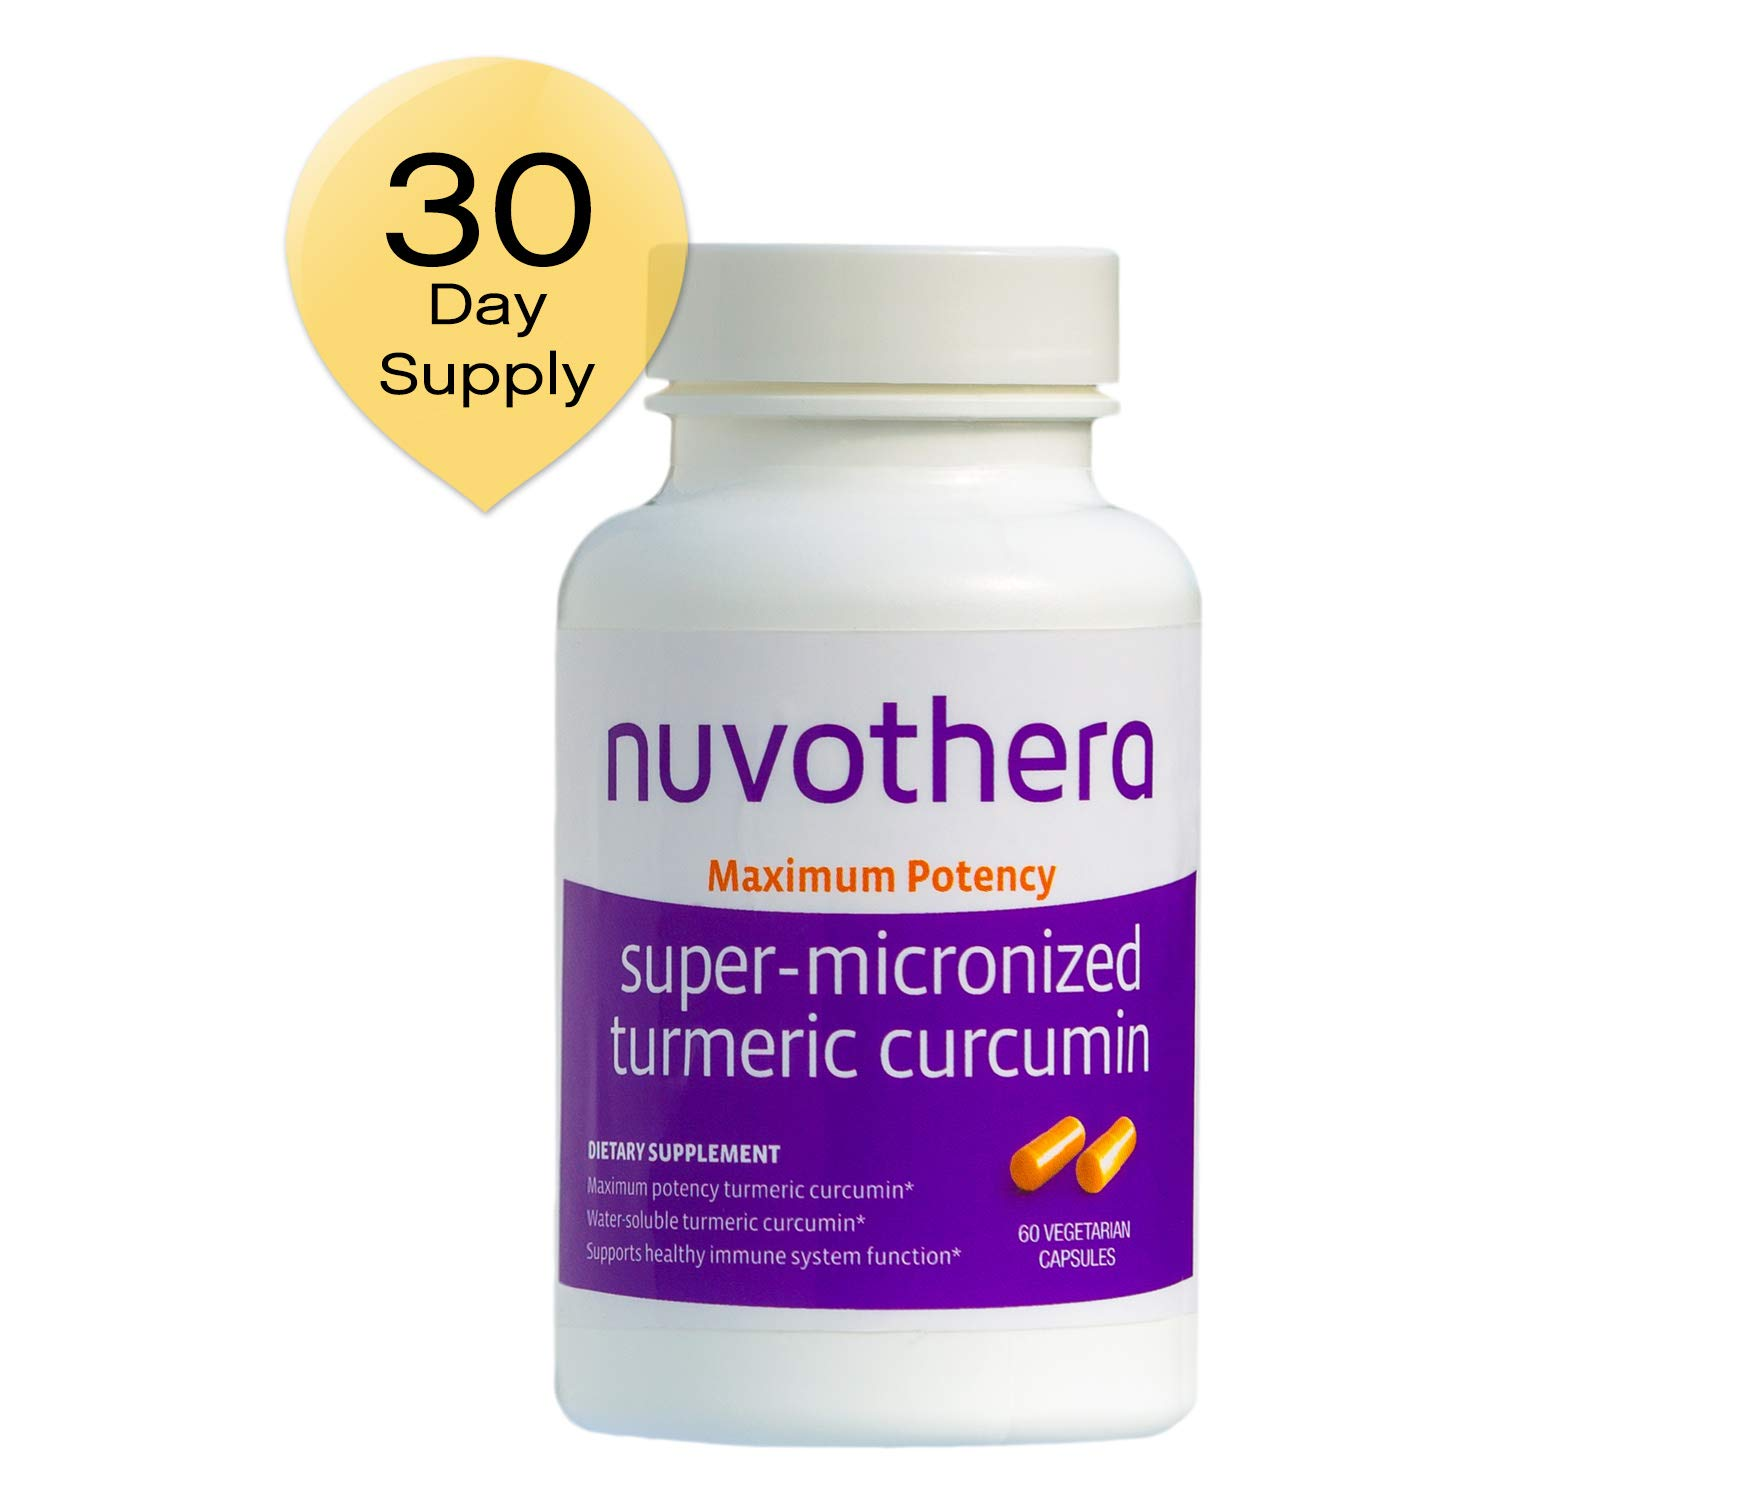 Nuvothera Super Micronized Turmeric Curcumin Supplement 60 Capsules (500 mg) Maximum Potency Whole Turmeric Root and Full Strength Curcumin-Natural Anti-Inflammatory, 1 Month Supply